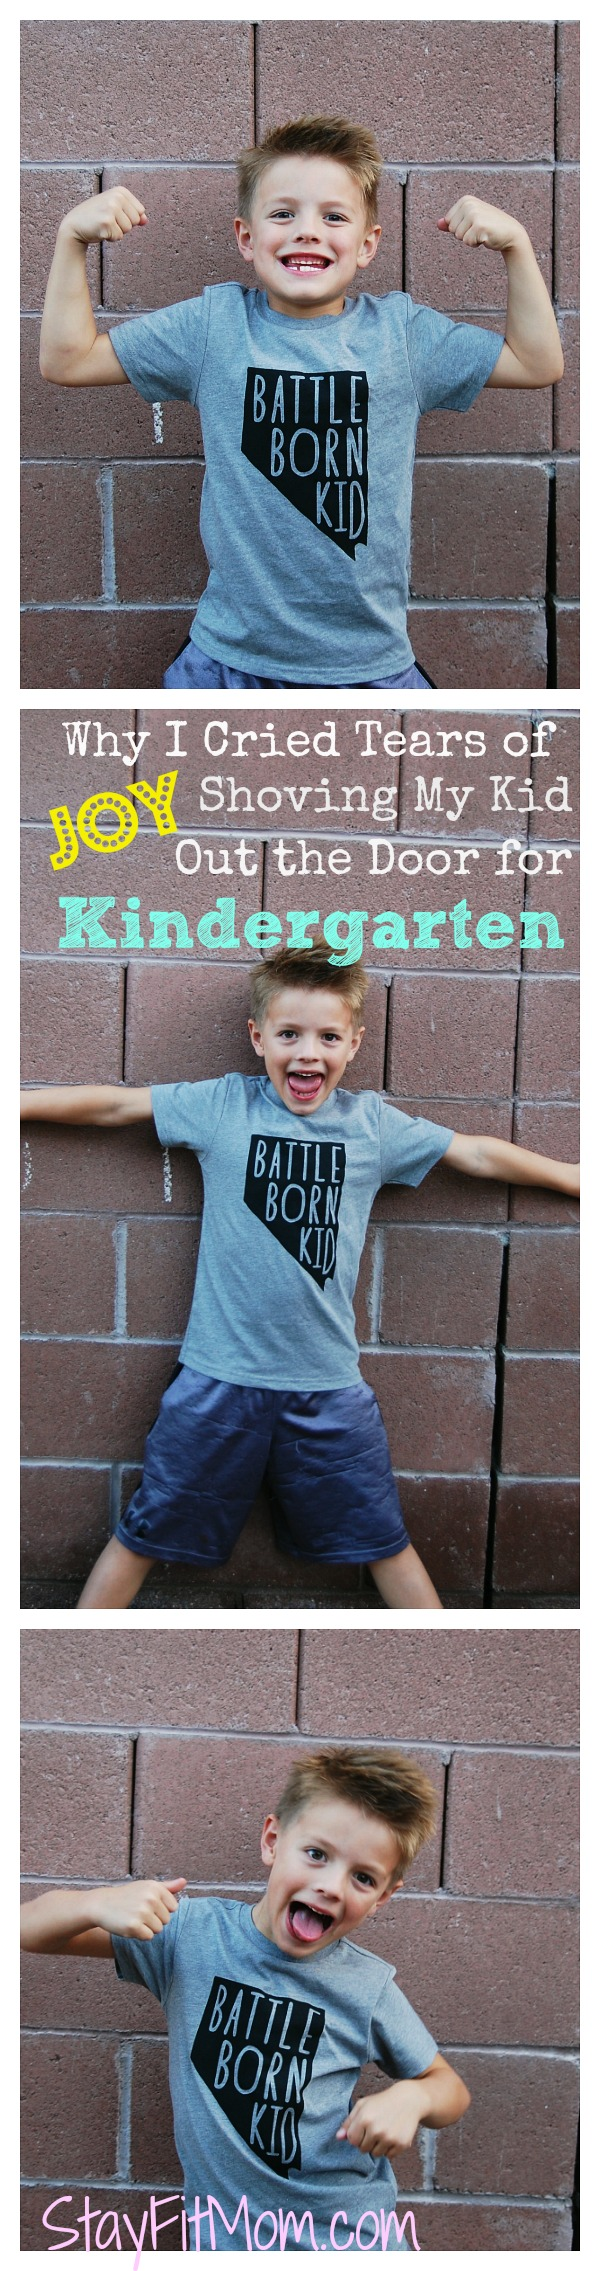 Tears of joy on the first day of Kindergarten from StayFitMom.com.